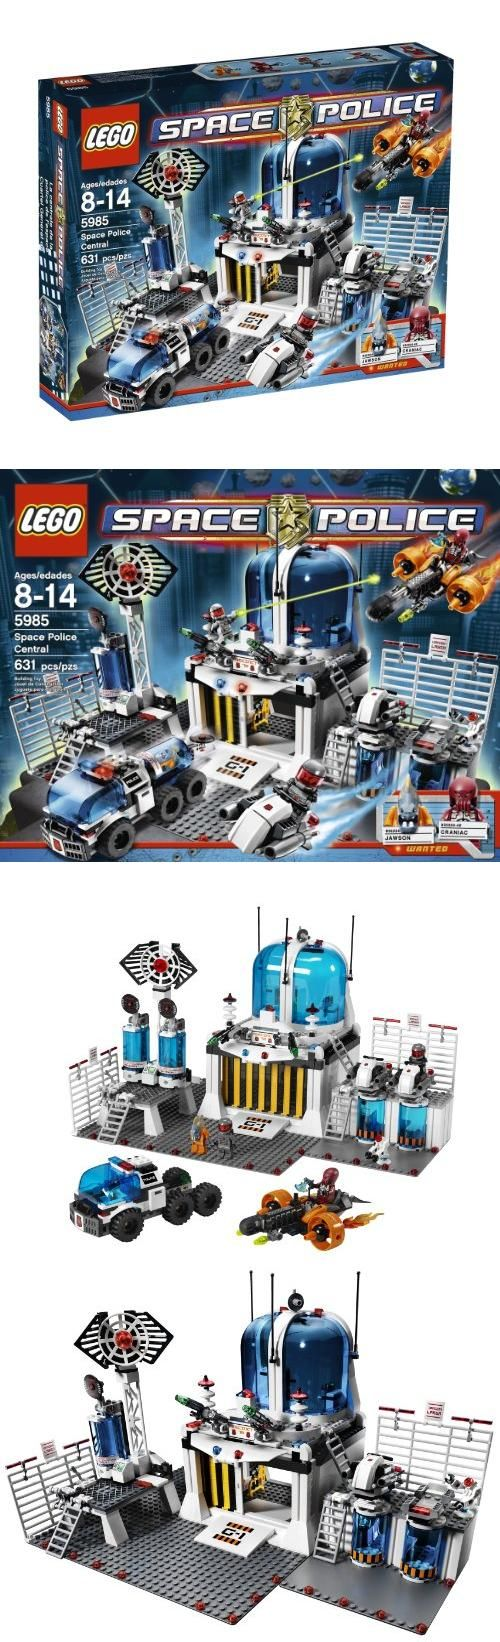 LEGO® Space Police Central 5985, Pieces: 631Lock up alien crooks in Precinct 78 and prevent maximum-security mayhem!The Space Police are out to contain some of the galaxy's most dangerous criminals in Precinct 78's prison pods. Now t..., #Toys, #Building Sets